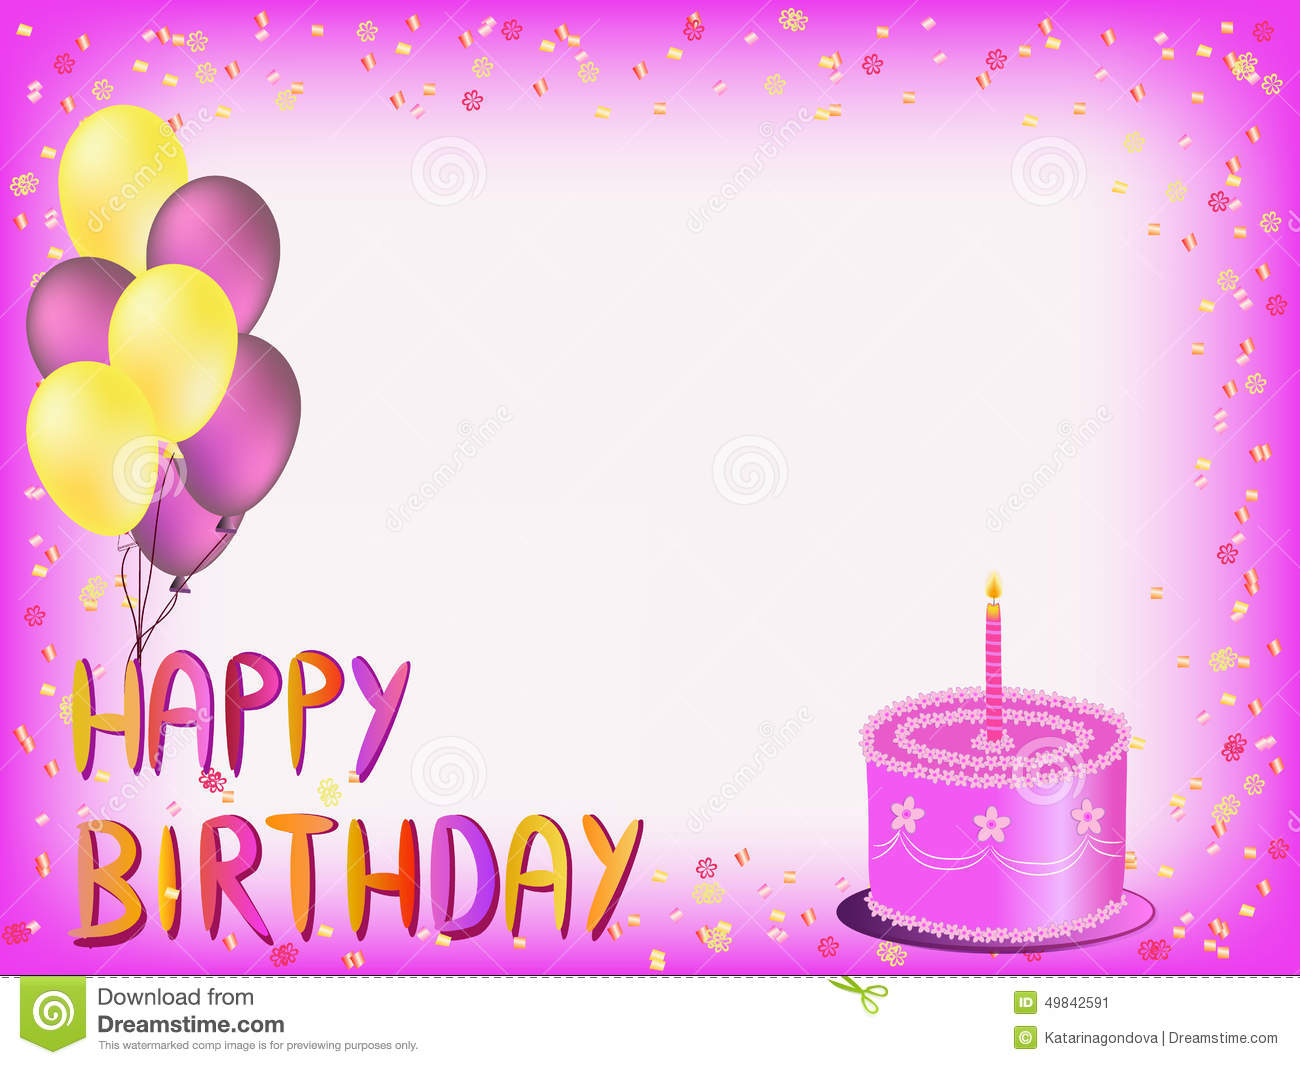 bday greeting card designs ; birthday-greeting-card-amazing-design-collection-card-for-your-birthday-card-ideas-good-happy-birthday-wishes-all-inspiration-birthday